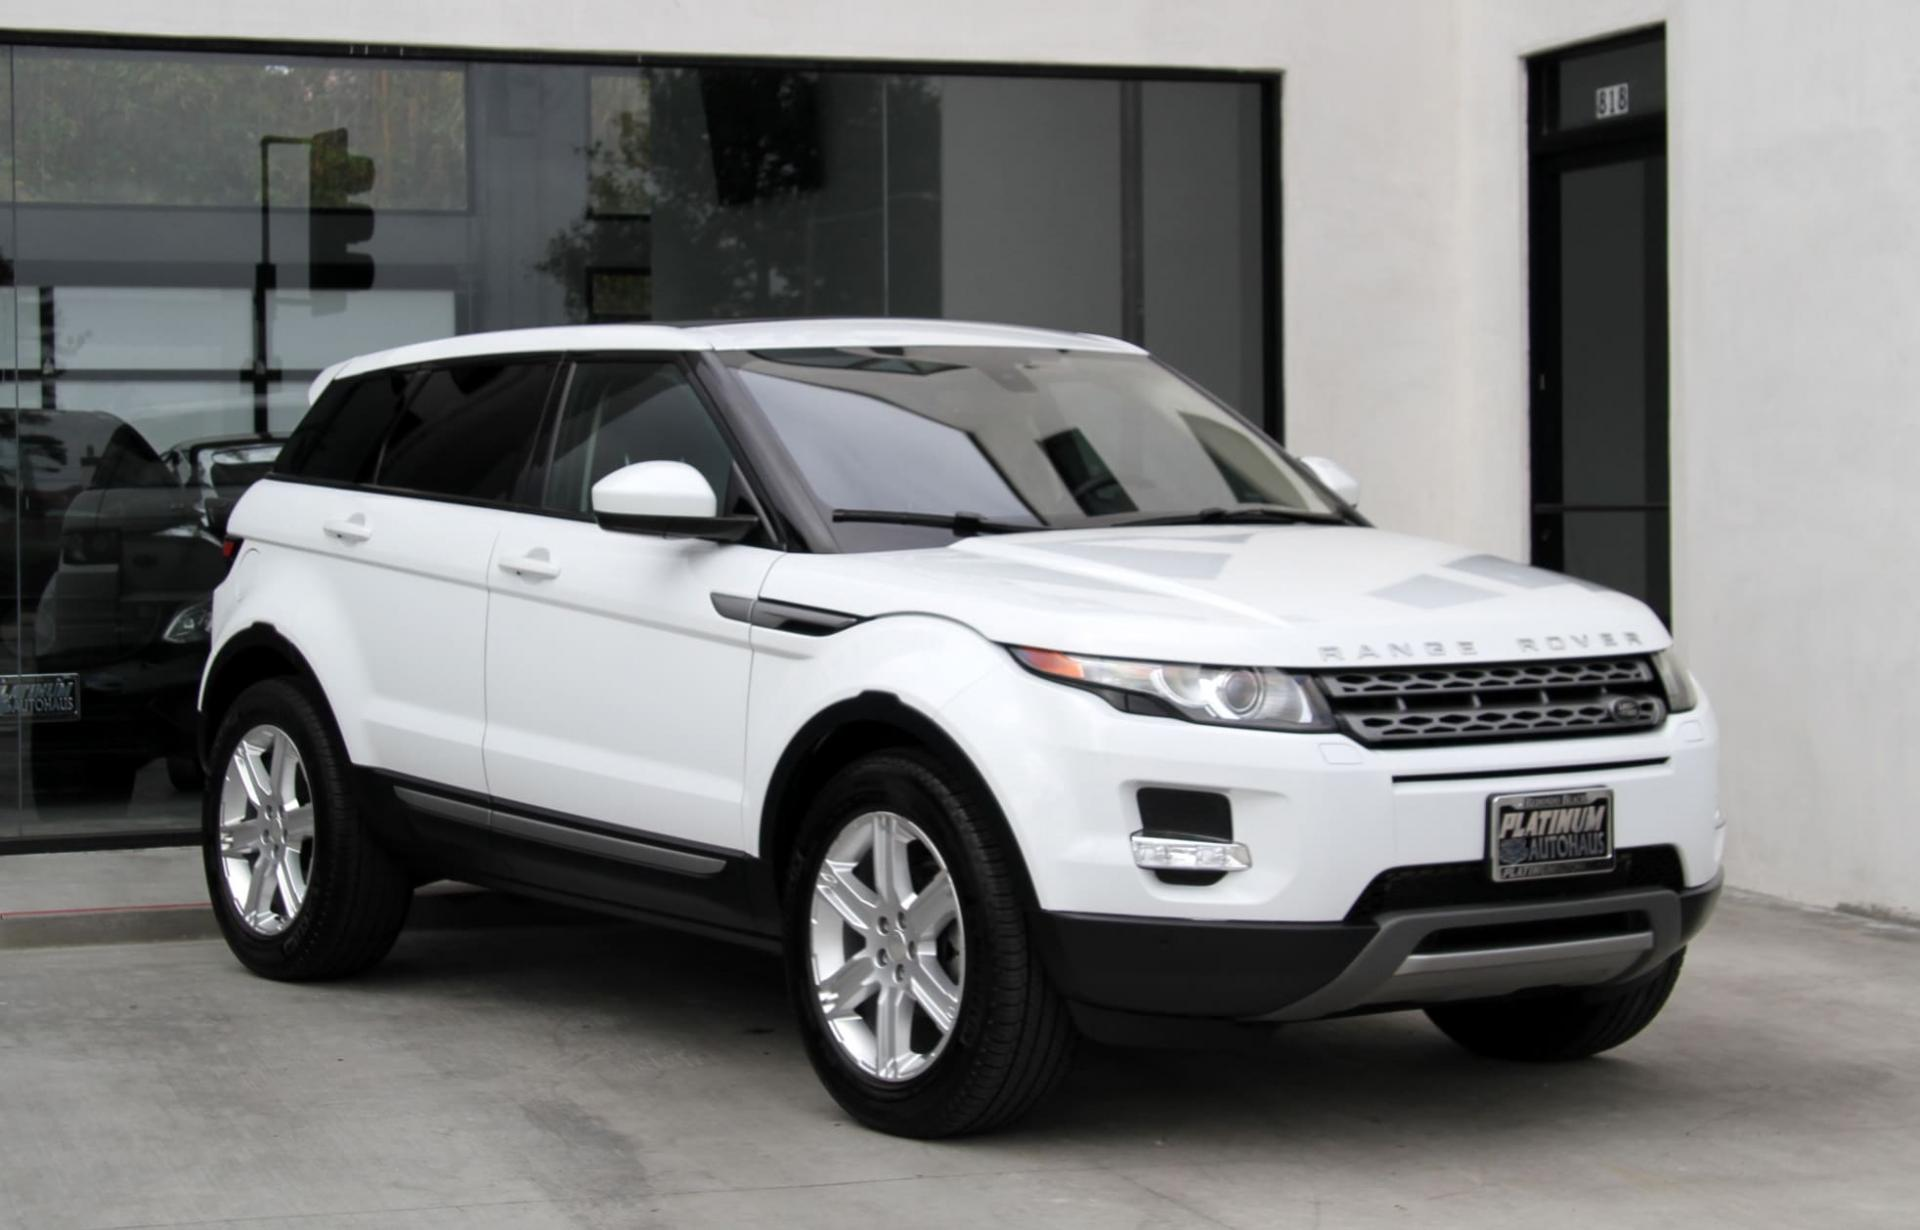 now personal ad with land and is out landrover up range rover close get evoque